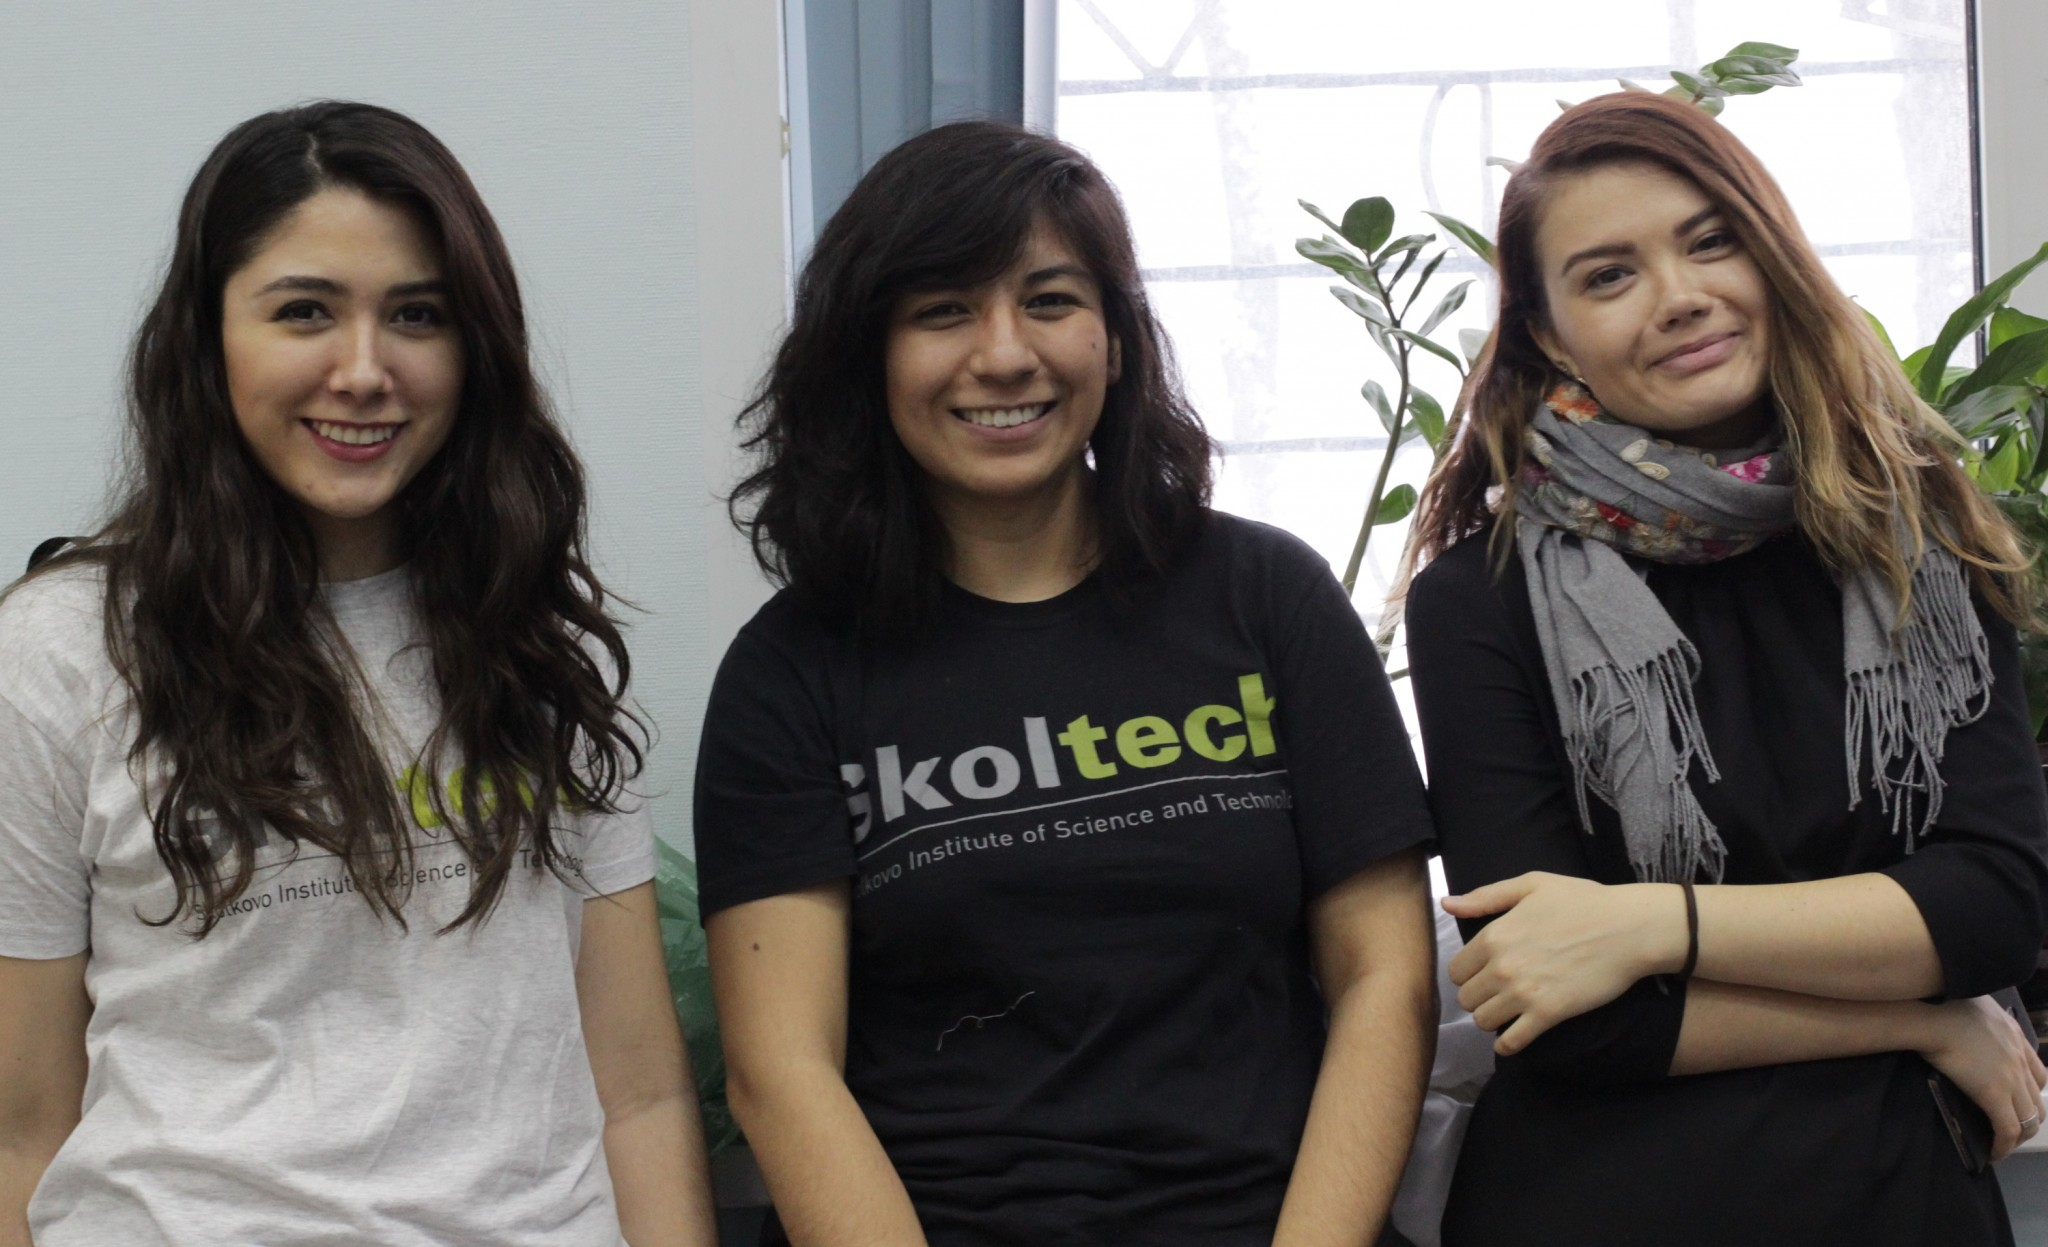 Skoltech students (from left) Grecia Diaz, Laura Elidedt-Rodriguez and a friend on the sidelines of the science fair. Photo: Skoltech.